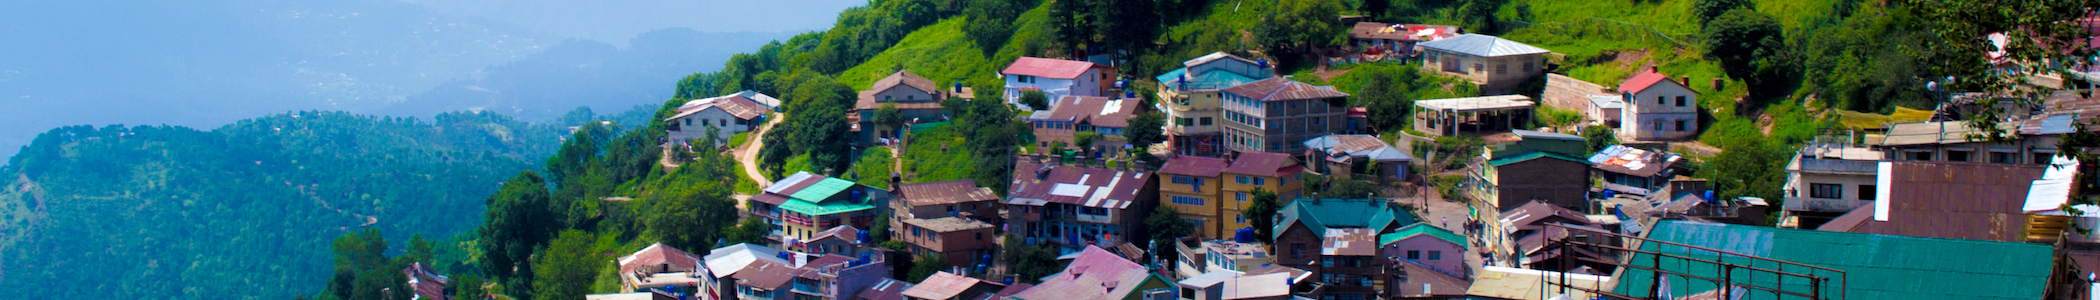 essay on murree This heavenly place murree is located in pakistan pakistan hav many places like this & dats y pakistan is called switzerland of east the tourists who have.